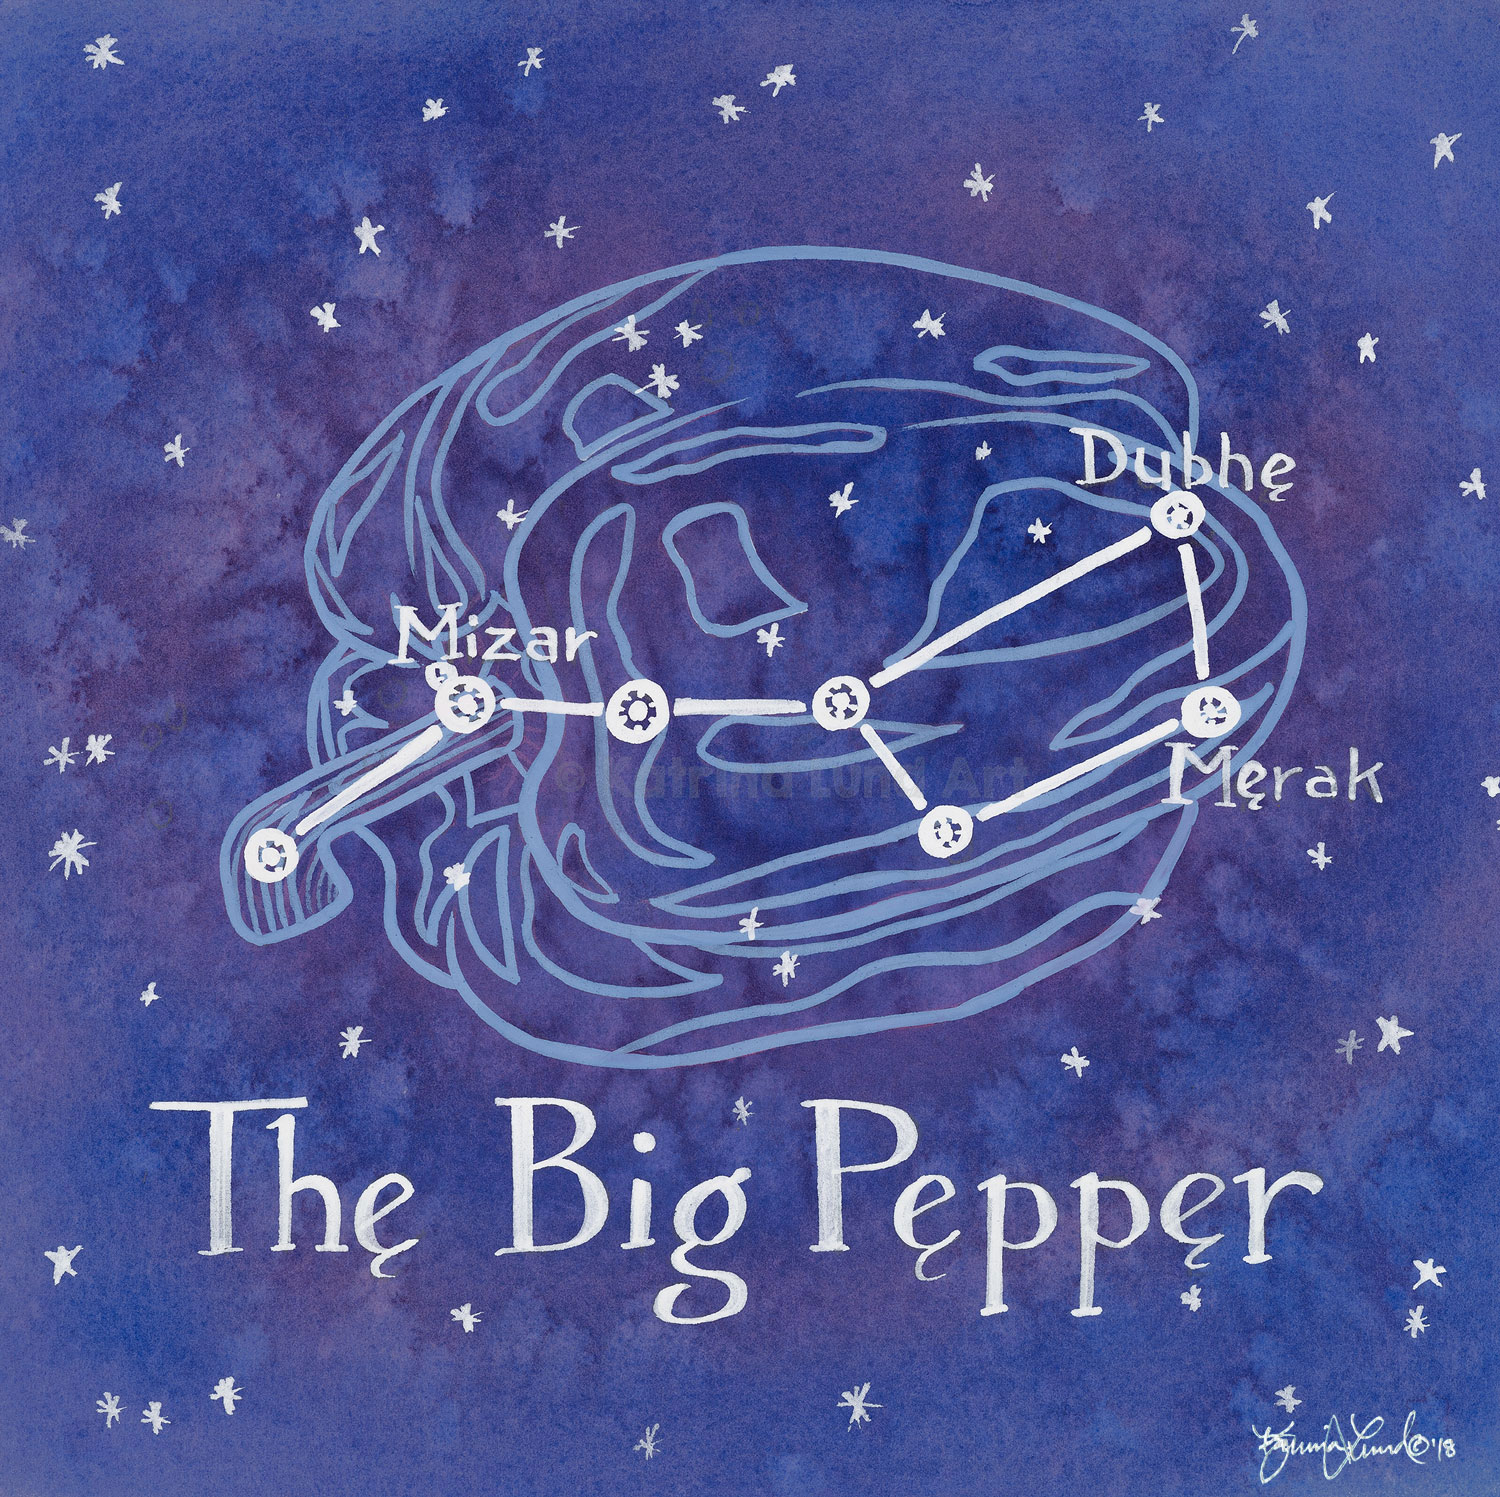 The Big Pepper by Night